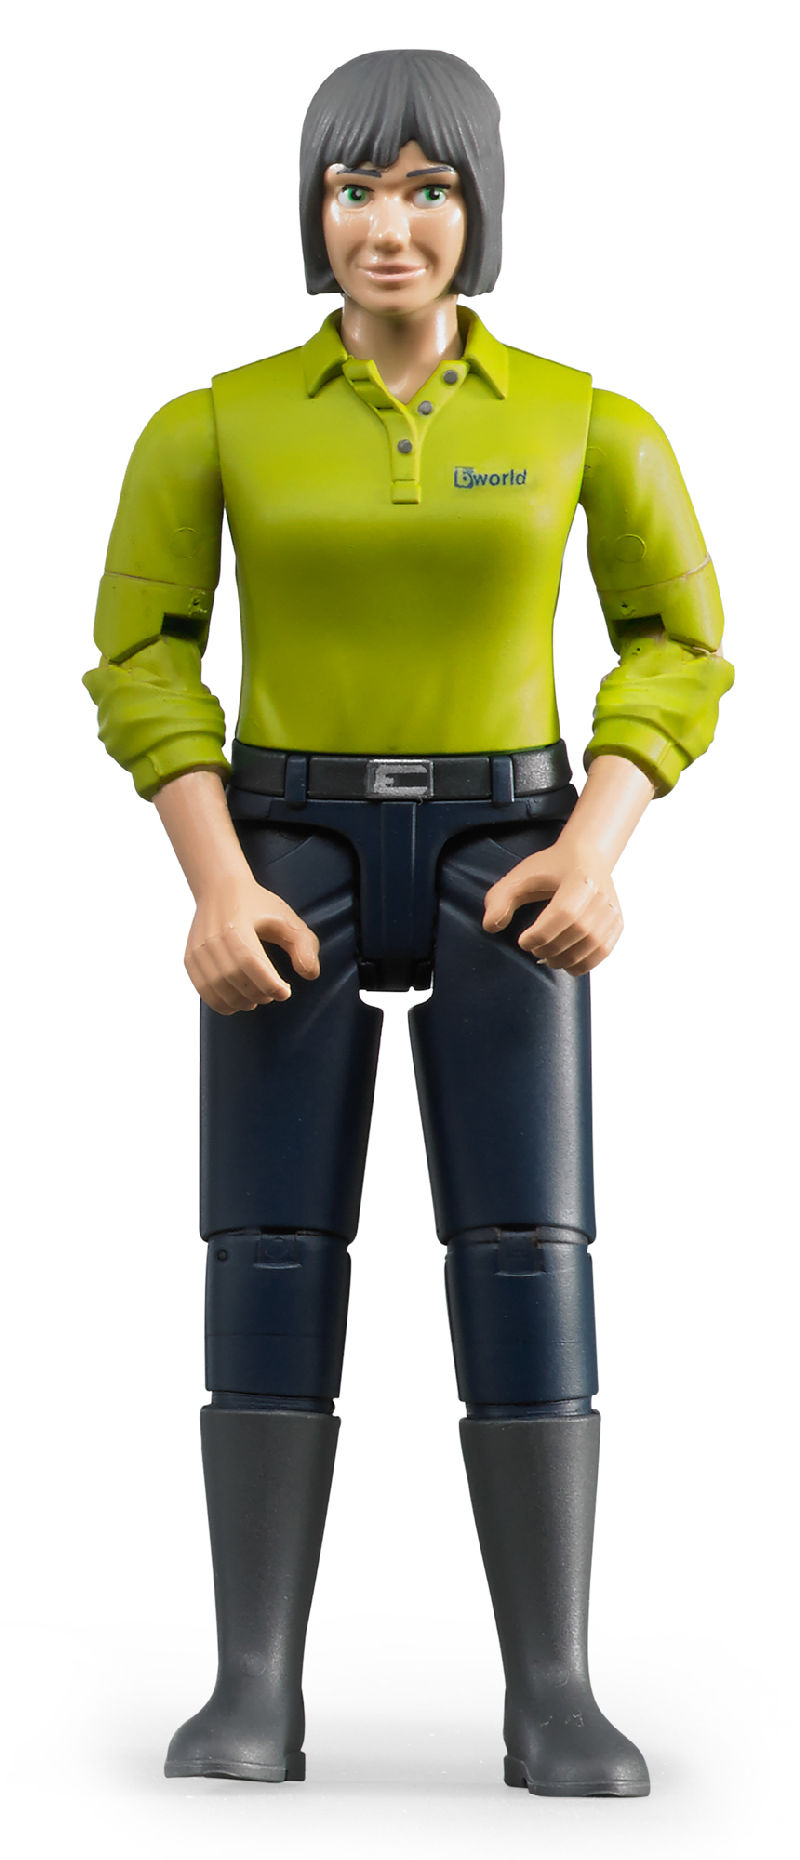 60405 - Bruder Toys Women Driver_Construction Worker